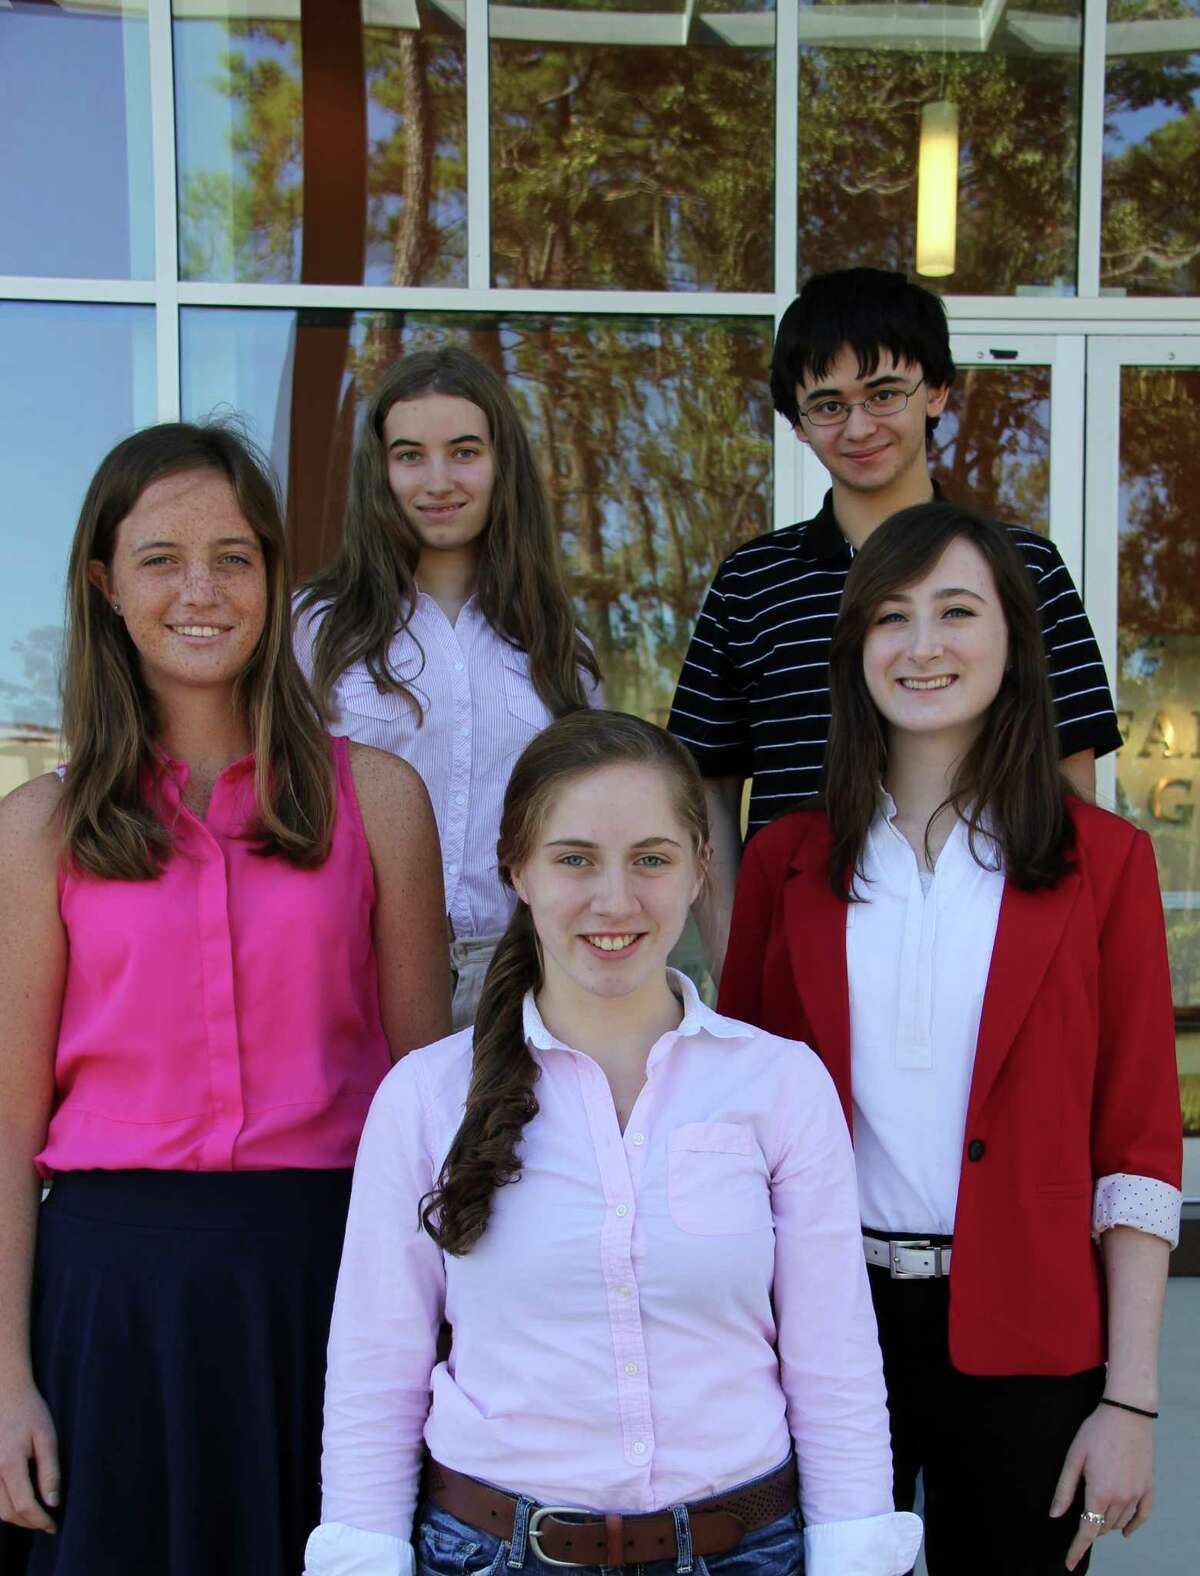 The John Cooper School students named as 2014 National Merit Scholarship Competition semifinalists are, from left, Margaret Whitney, Laura Densmore, Caroline Sands, Zachary Fojtasek and Molly Garrison.